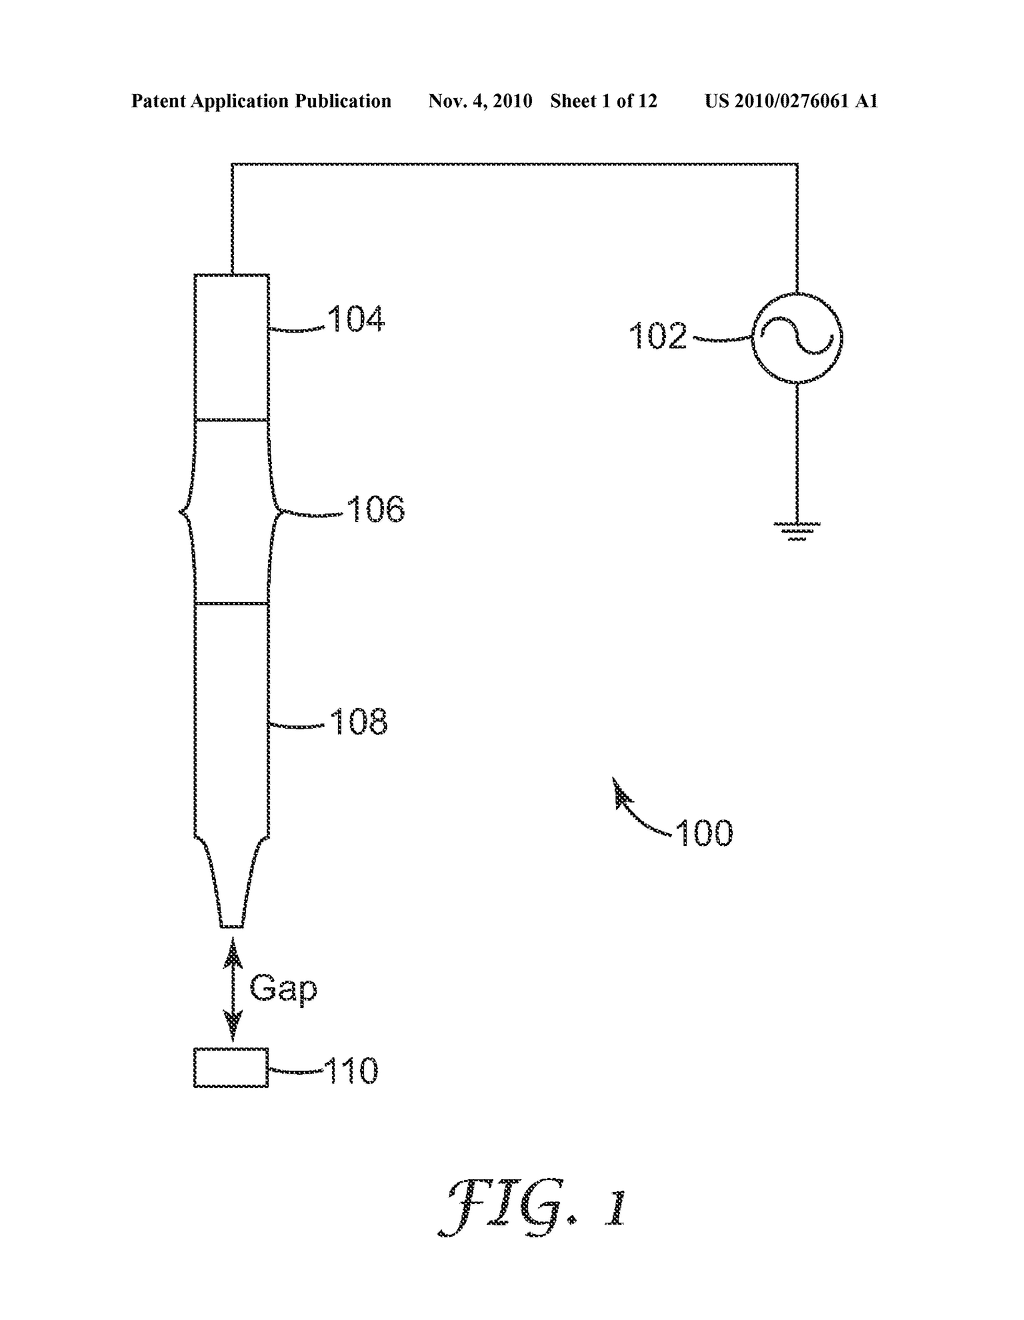 Cantilevered Bar Gap Adjustment For An Ultrasonic Welding System Diagram Machine Schematic And Image 02